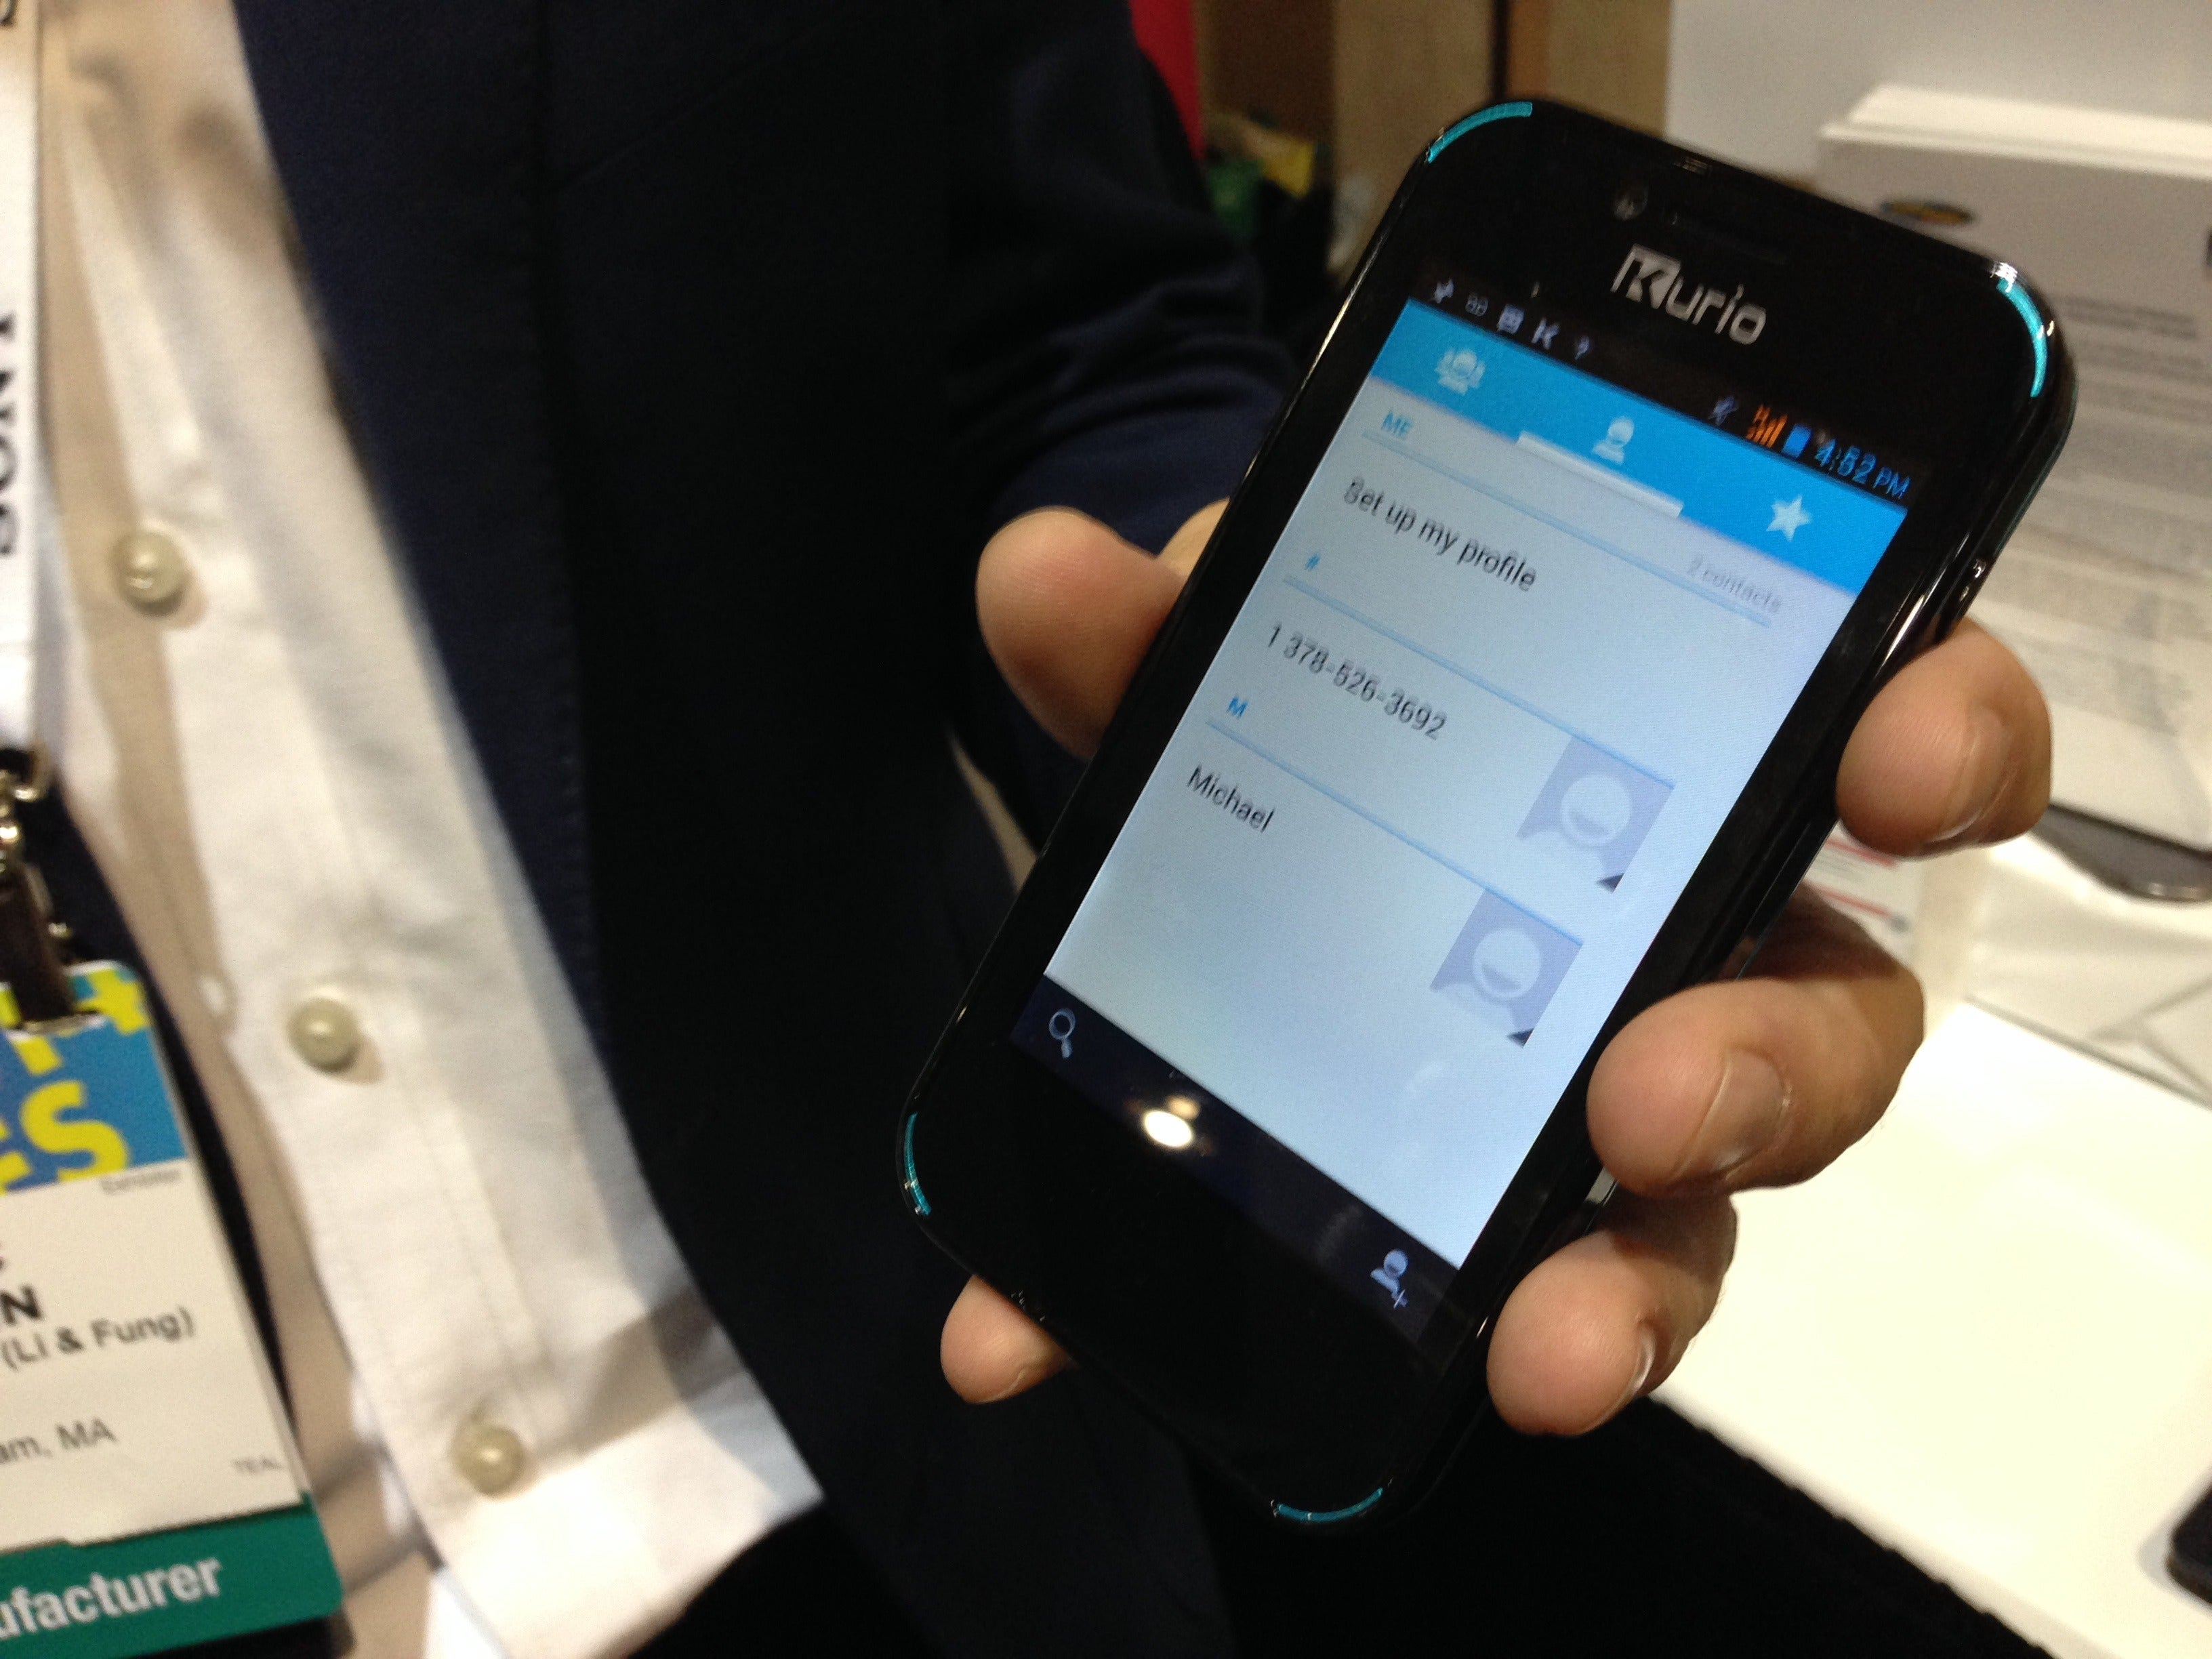 Kurio Phone Could Be The Ideal First Smartphone For Kids